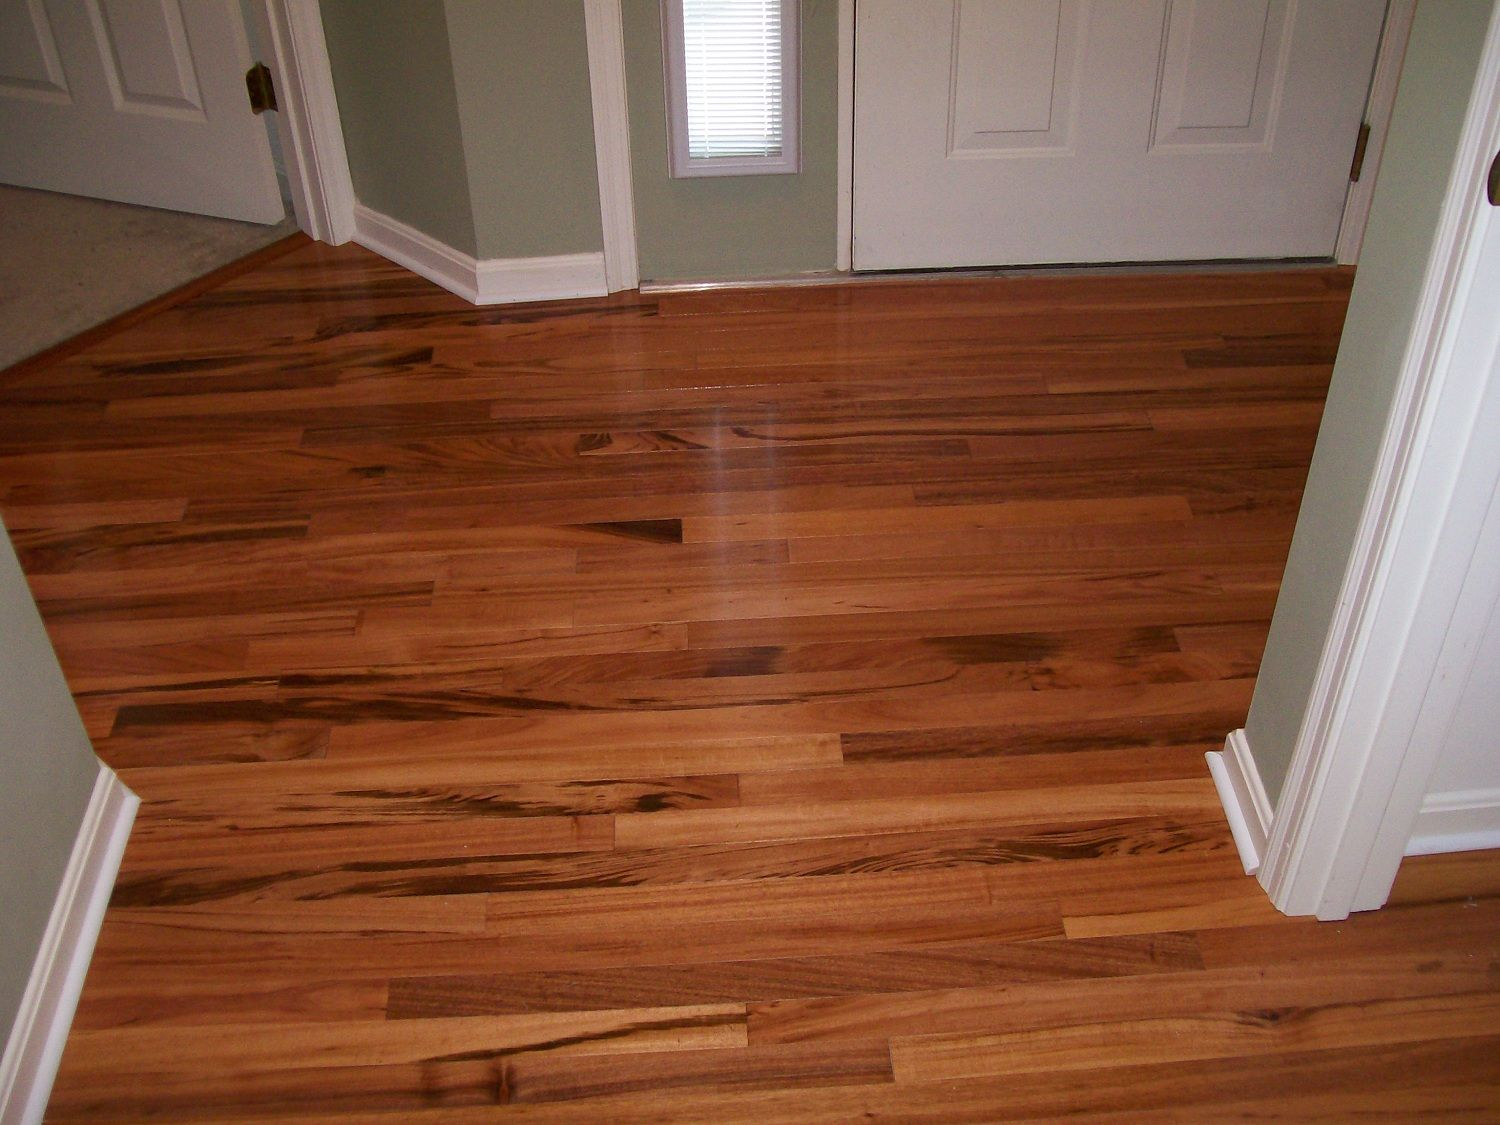 cork flooring reviews basement Waterproof wood floor